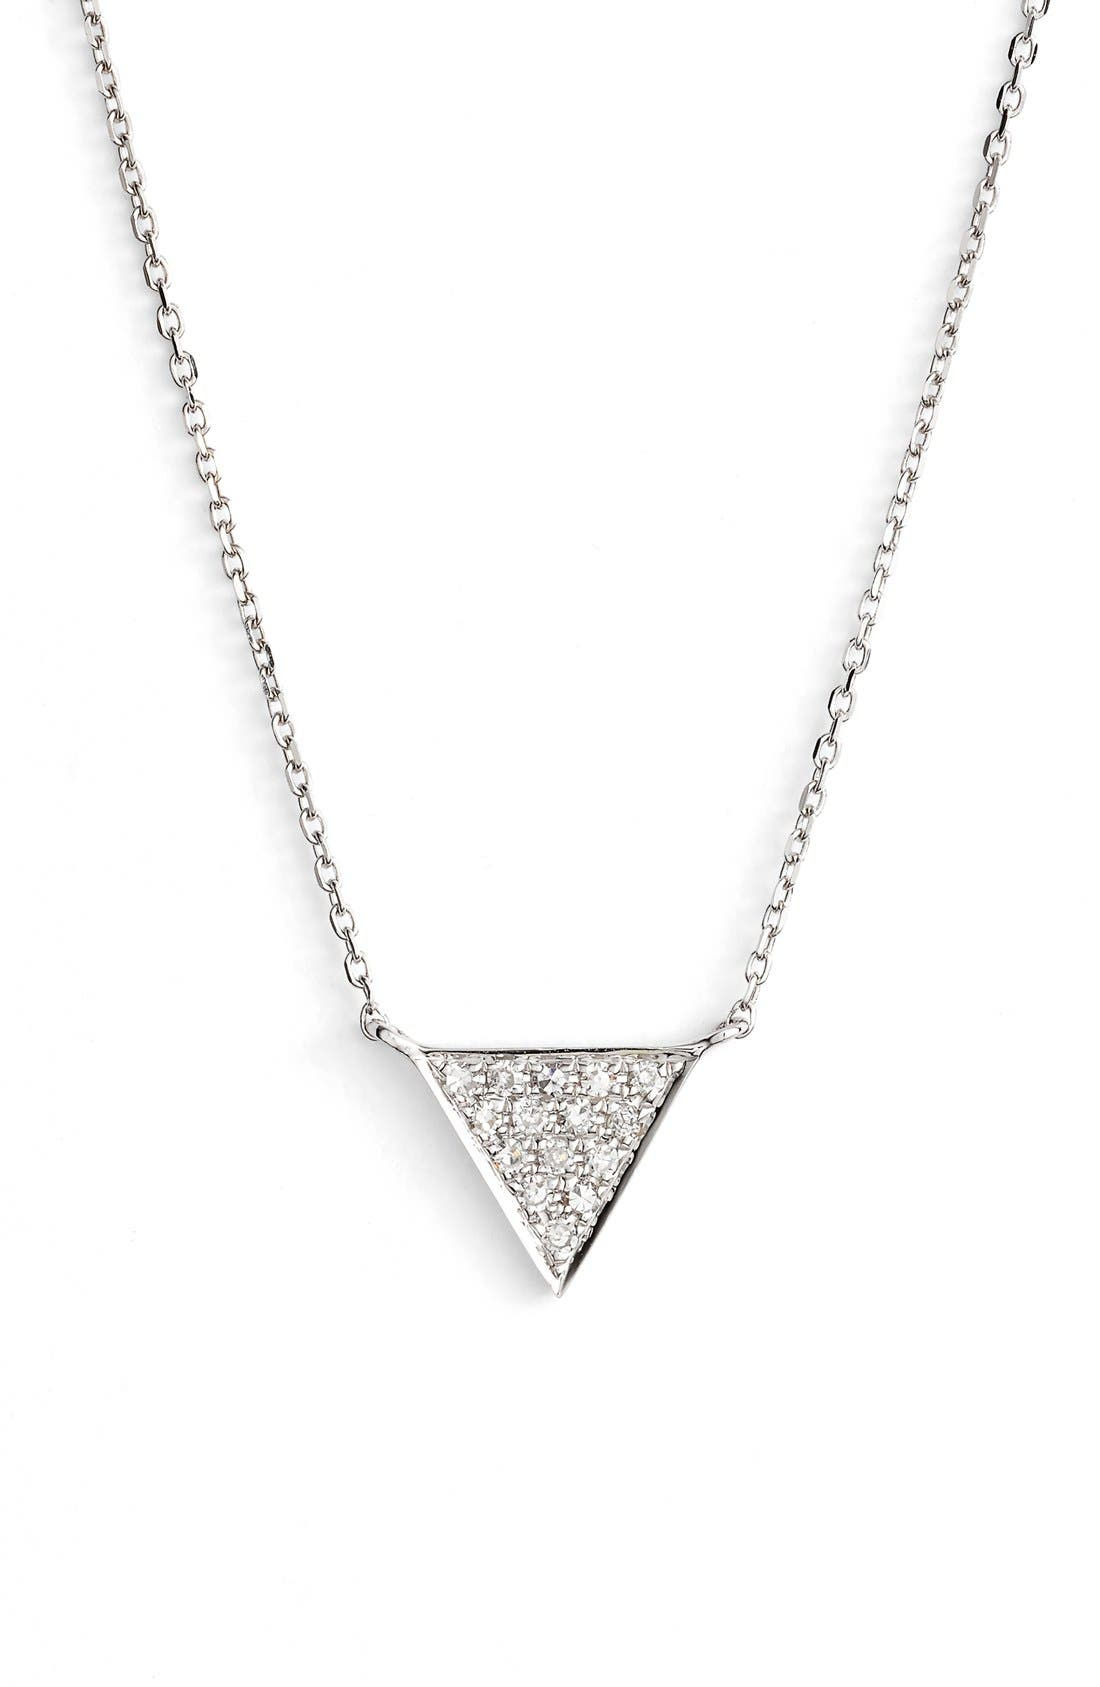 DANA REBECCA DESIGNS 'Emily Sarah' Diamond Triangle Pendant